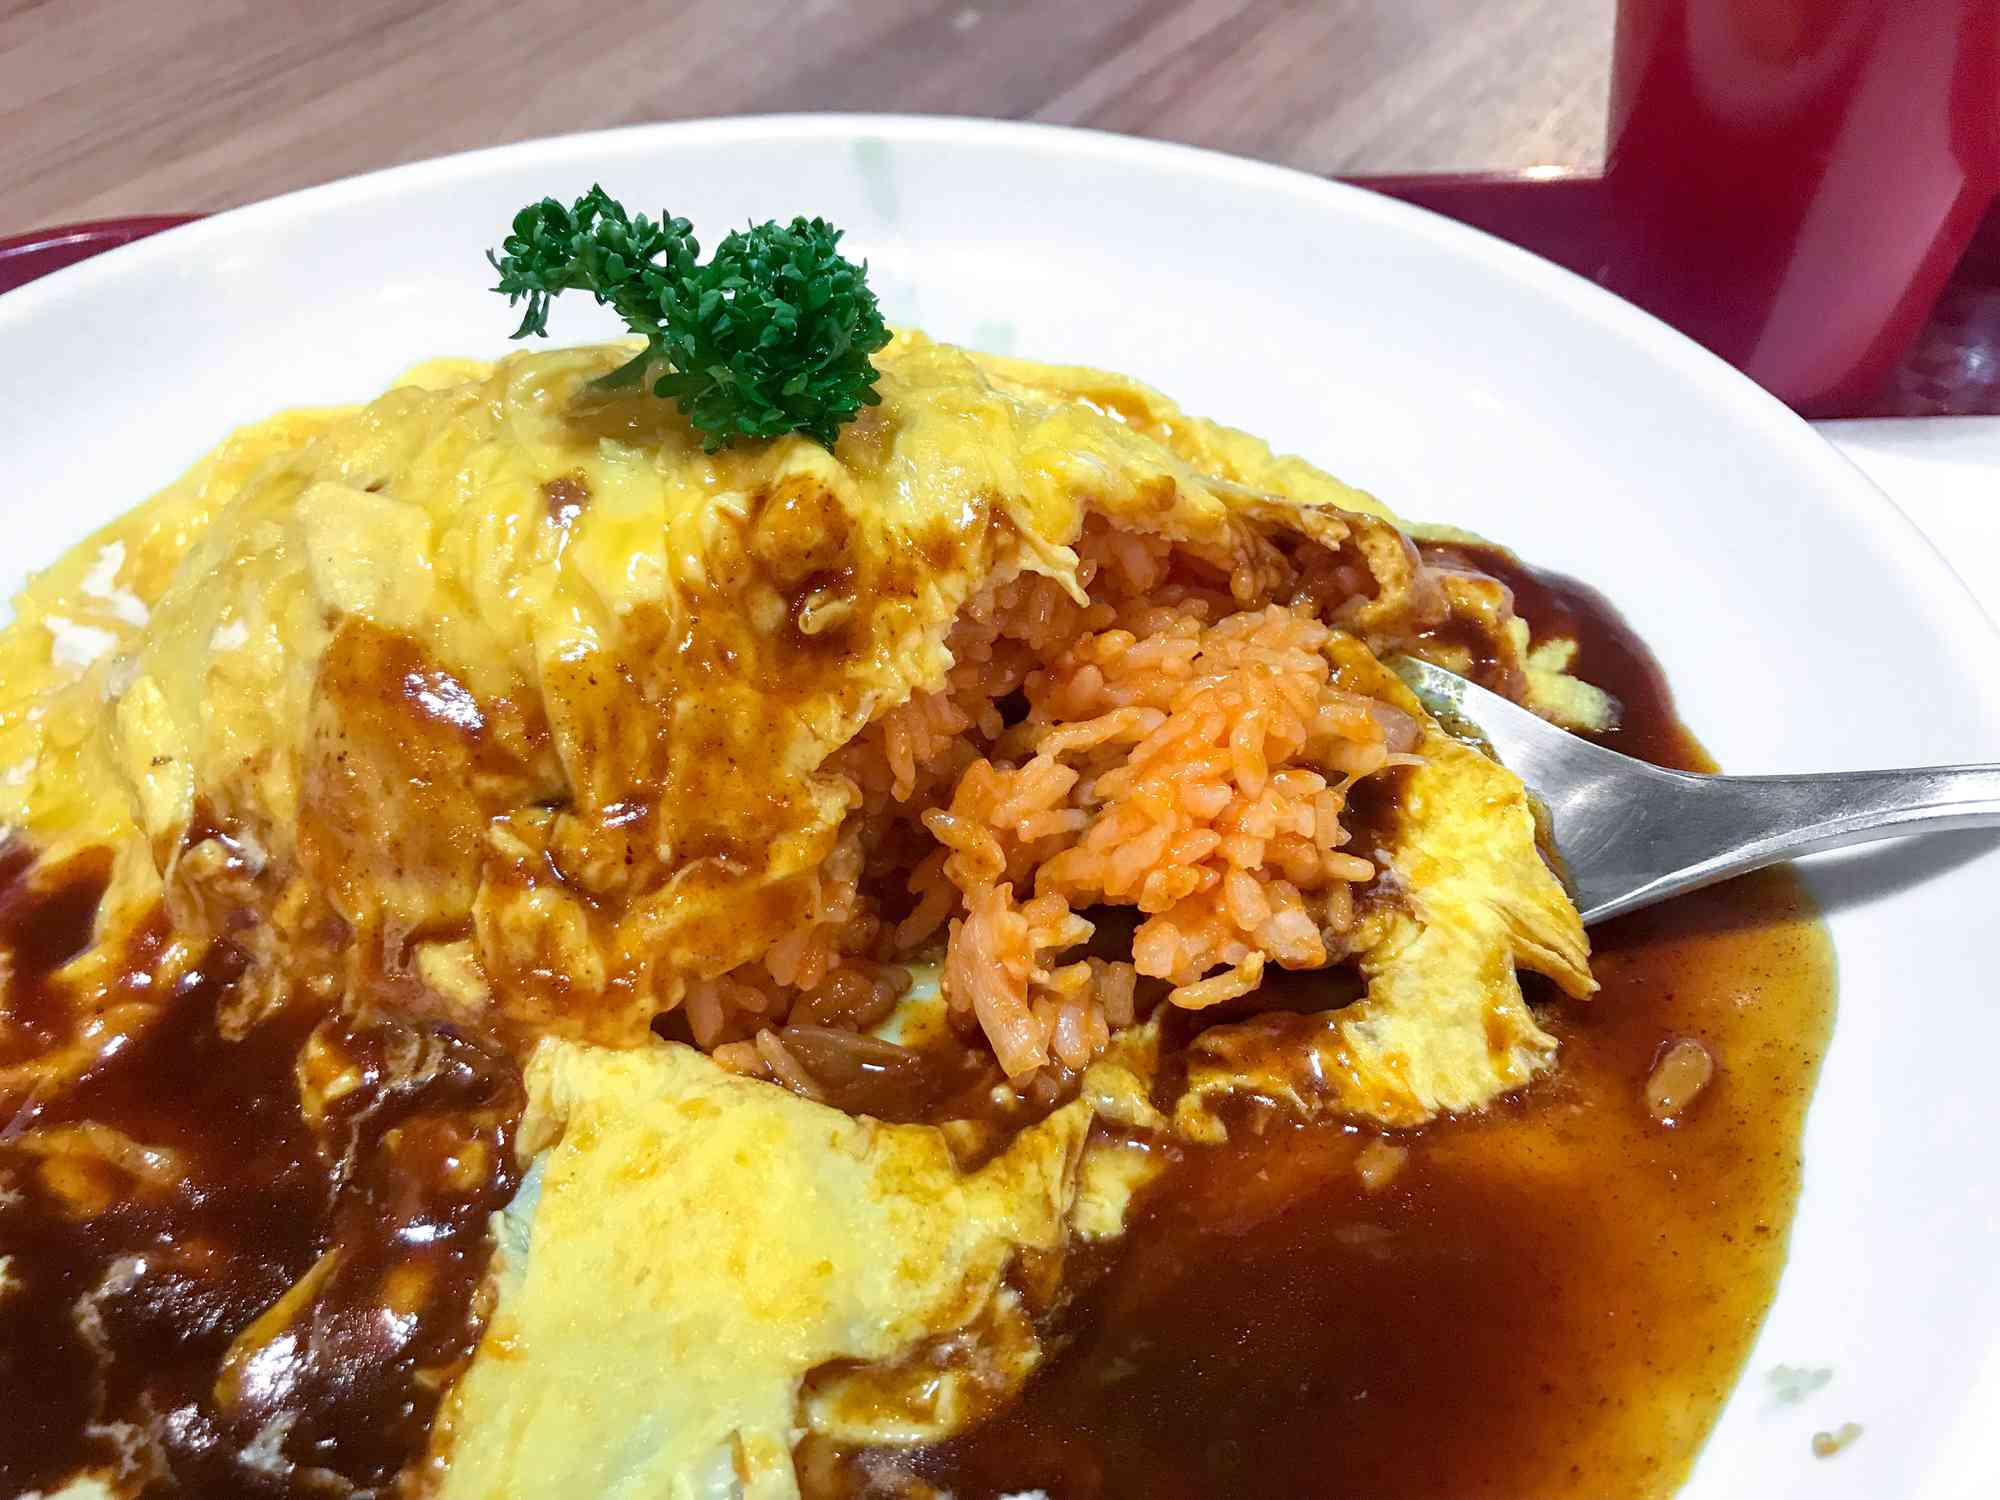 omurice with a bite taken out revealing the rice beneath the egg